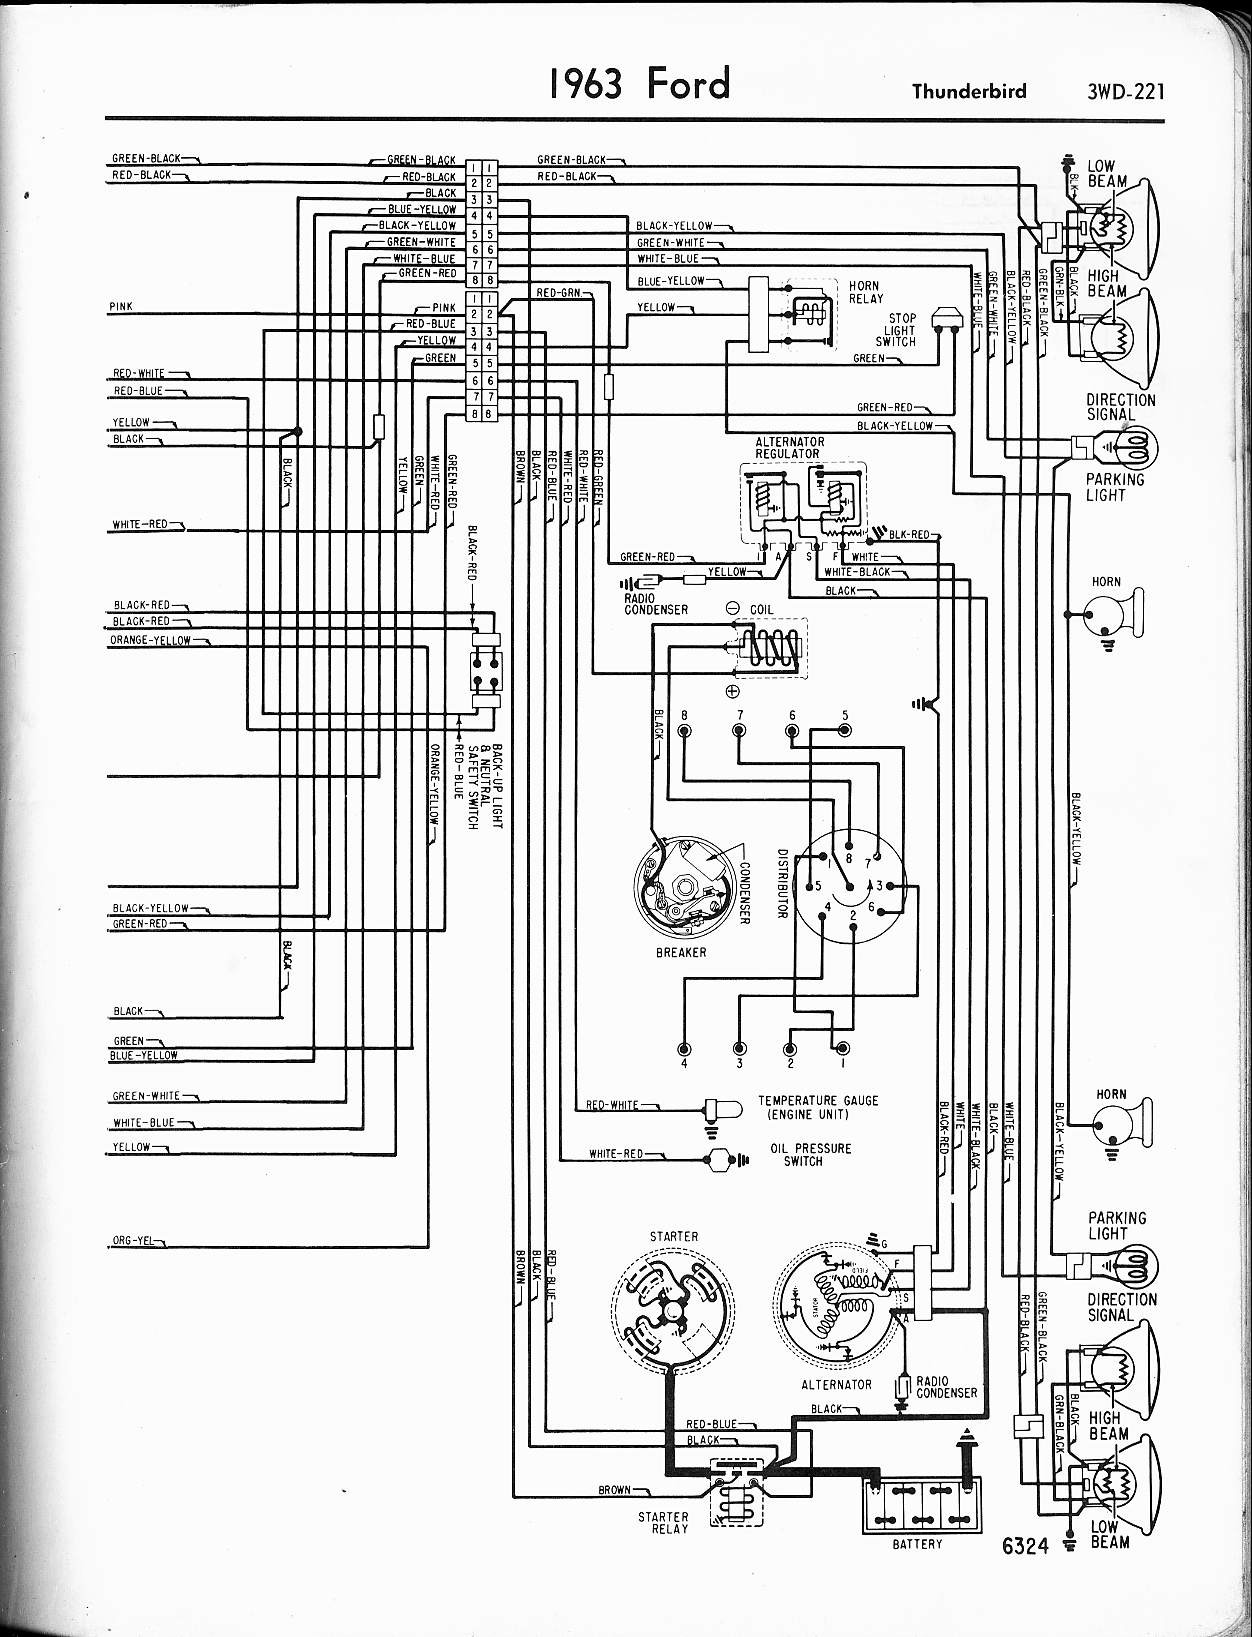 1966 impala wiring diagram free download schematic starting know 66 chevy wiring diagram light switch wiring diagrams 1966 ford falcon u2022 wiring